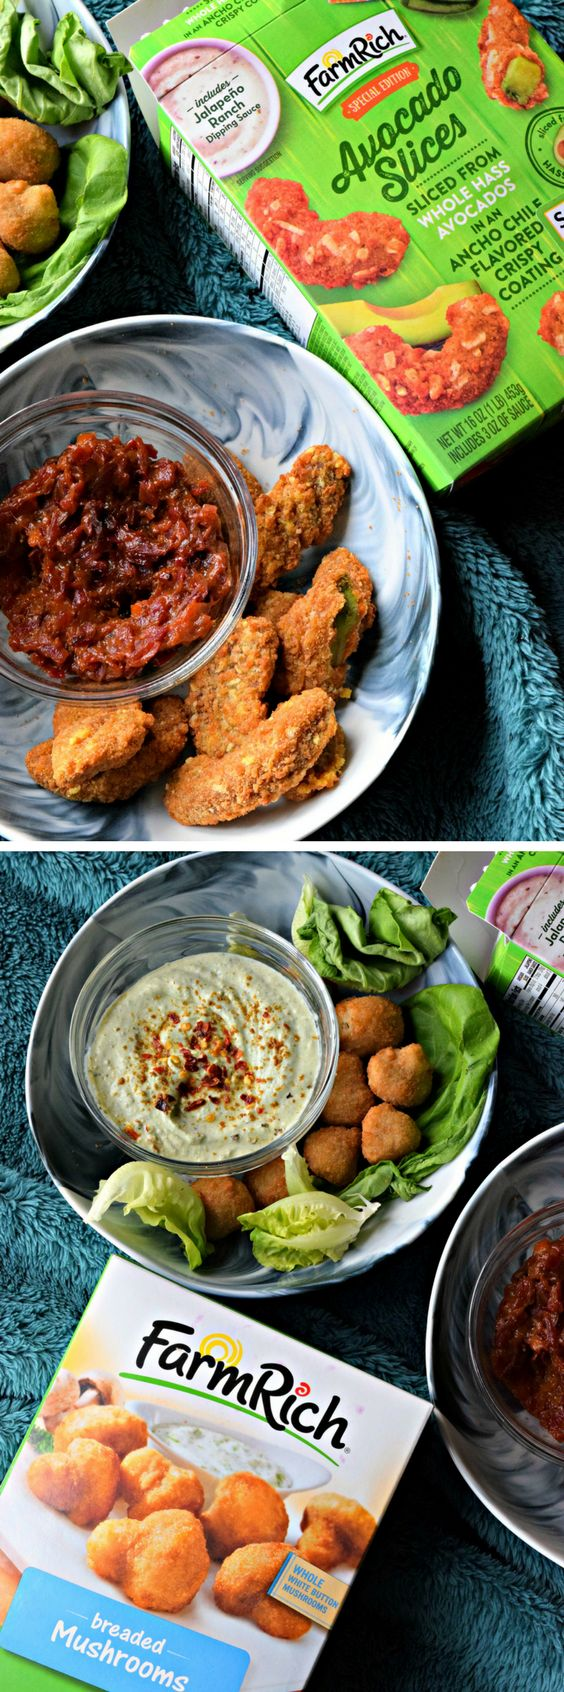 #ad Breaded Mushroom and Avocado Slices are Farm Rich snacks, made with wholesome ingredients, quick-frozen and carefully packaged. Serve them with delicious dips like the Avocado Mint Yogurt dipping sauce and Sweet Mango chutney.@farmrich #farmrich